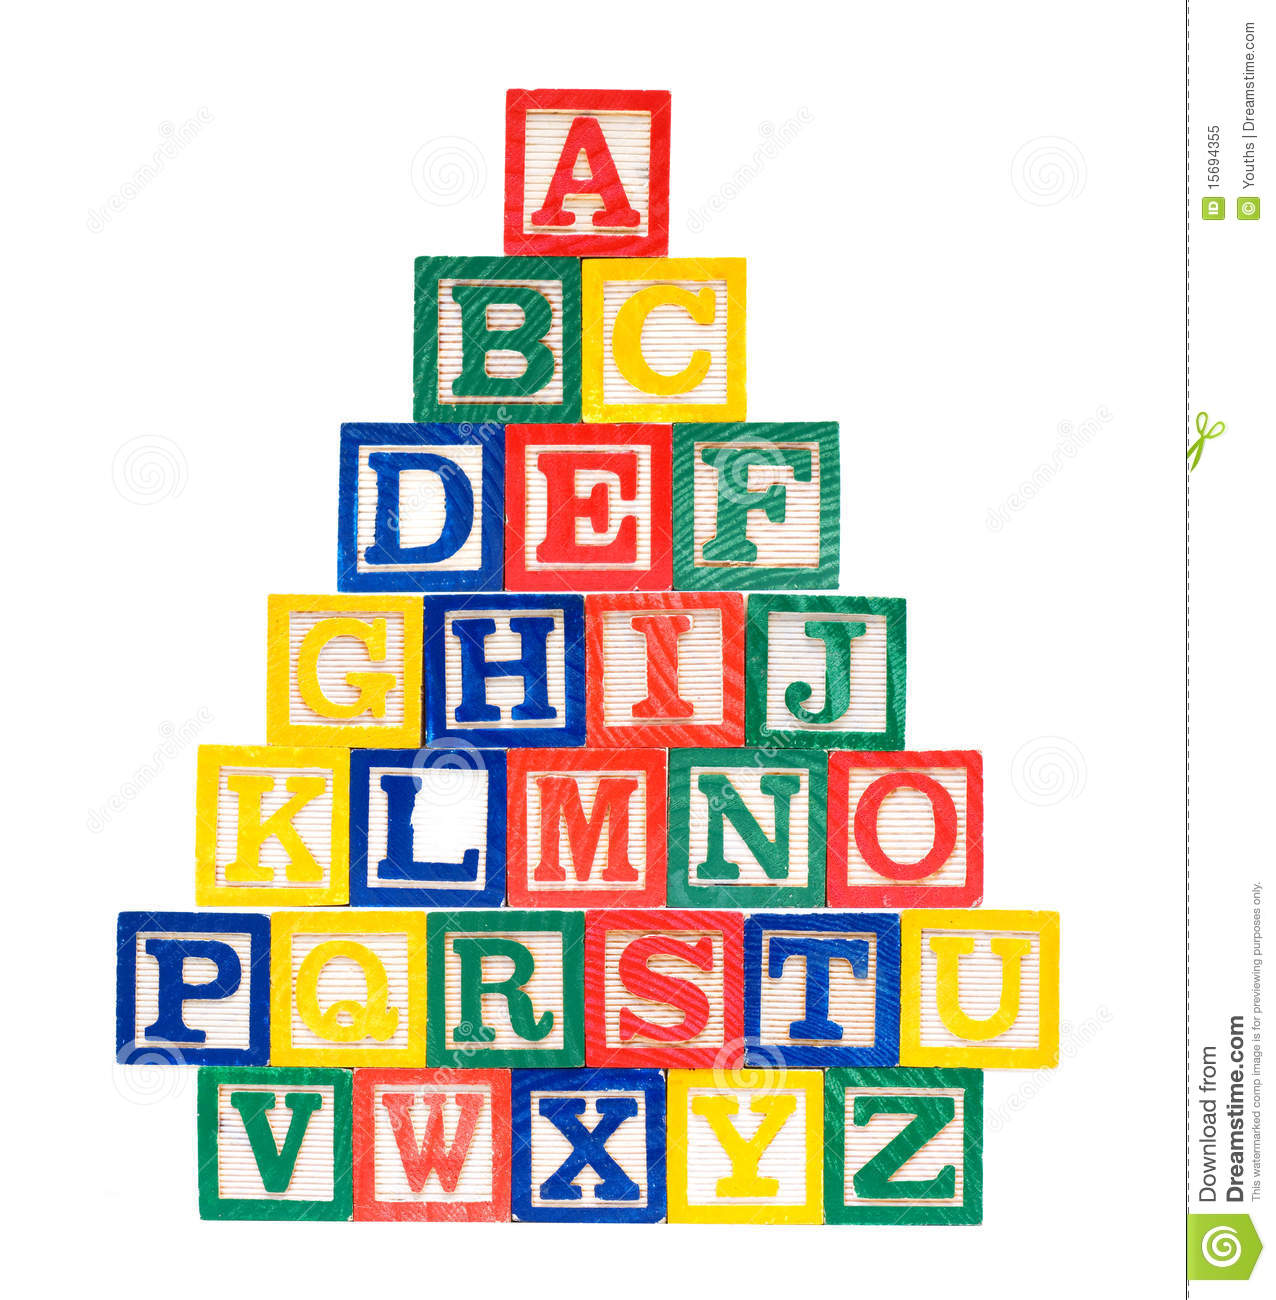 Clipart of wooden blocks with alphabet letter image Clipart of wooden blocks with alphabet letter - ClipartFest image